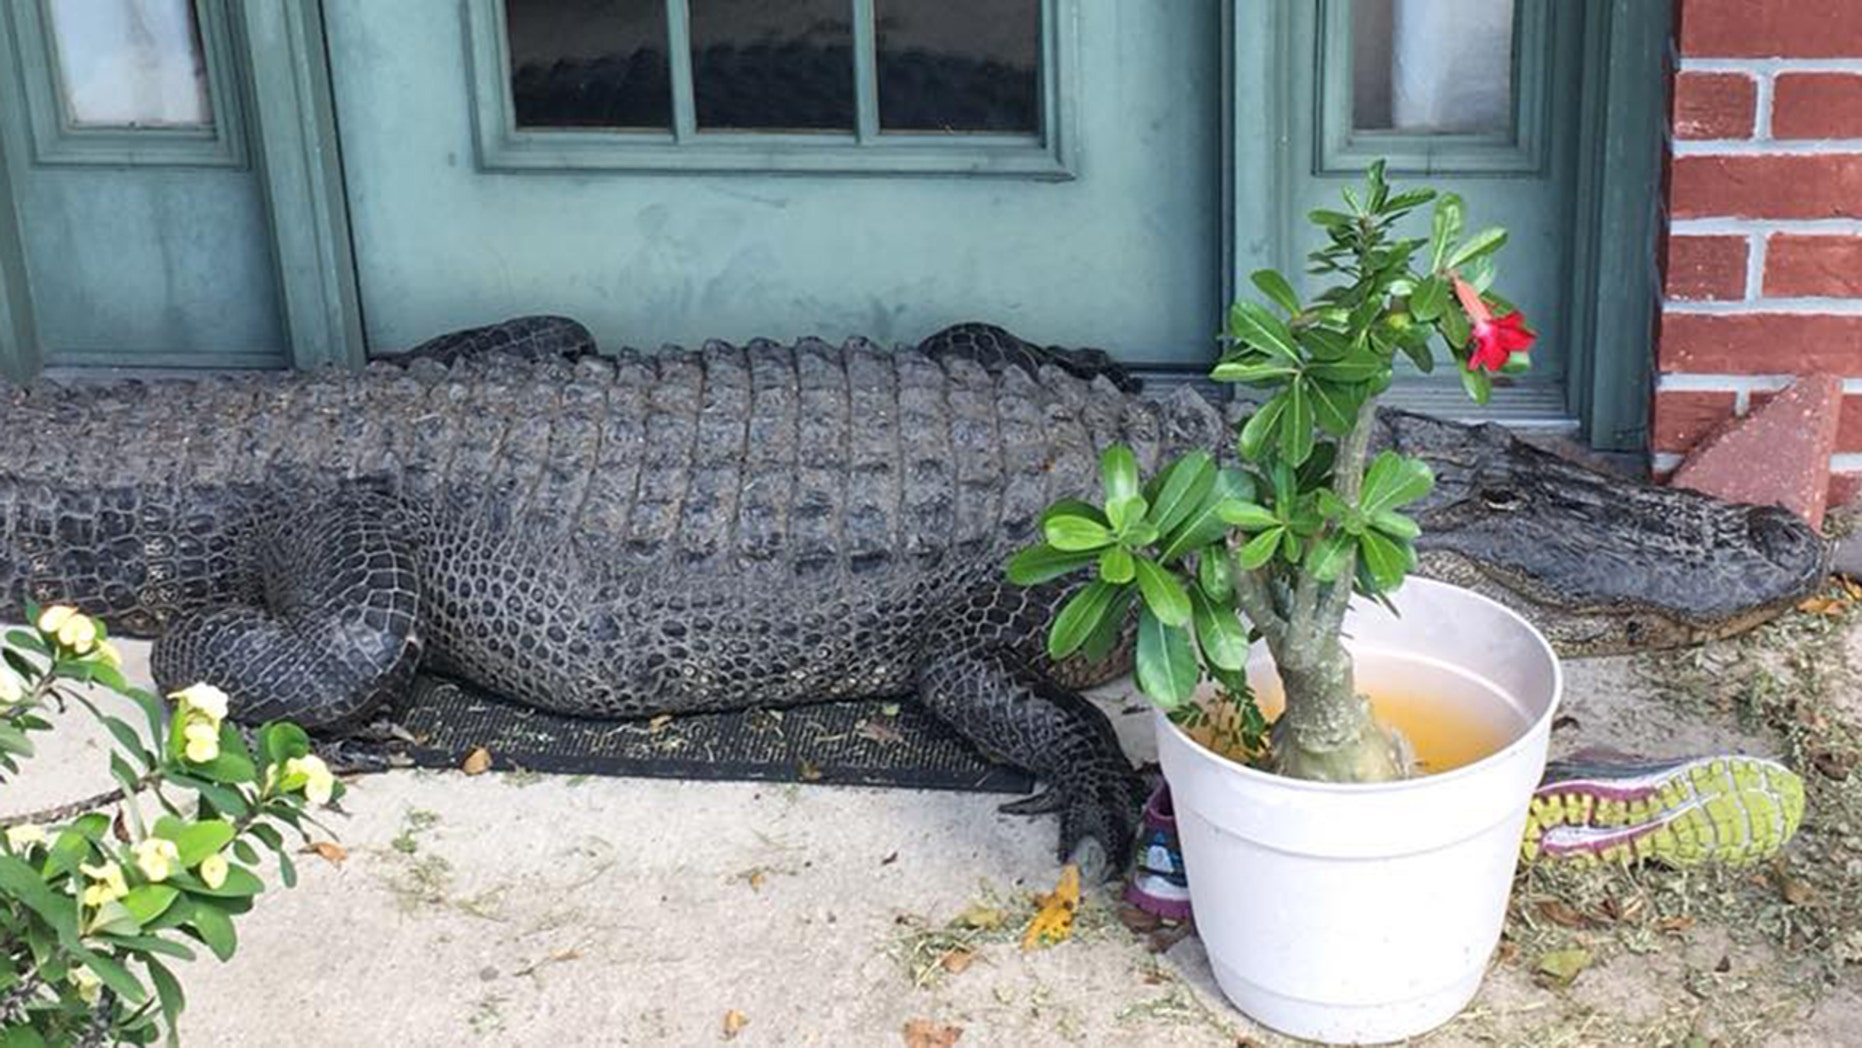 A large alligator was spotted outside a Louisiana home last week, deputies say.